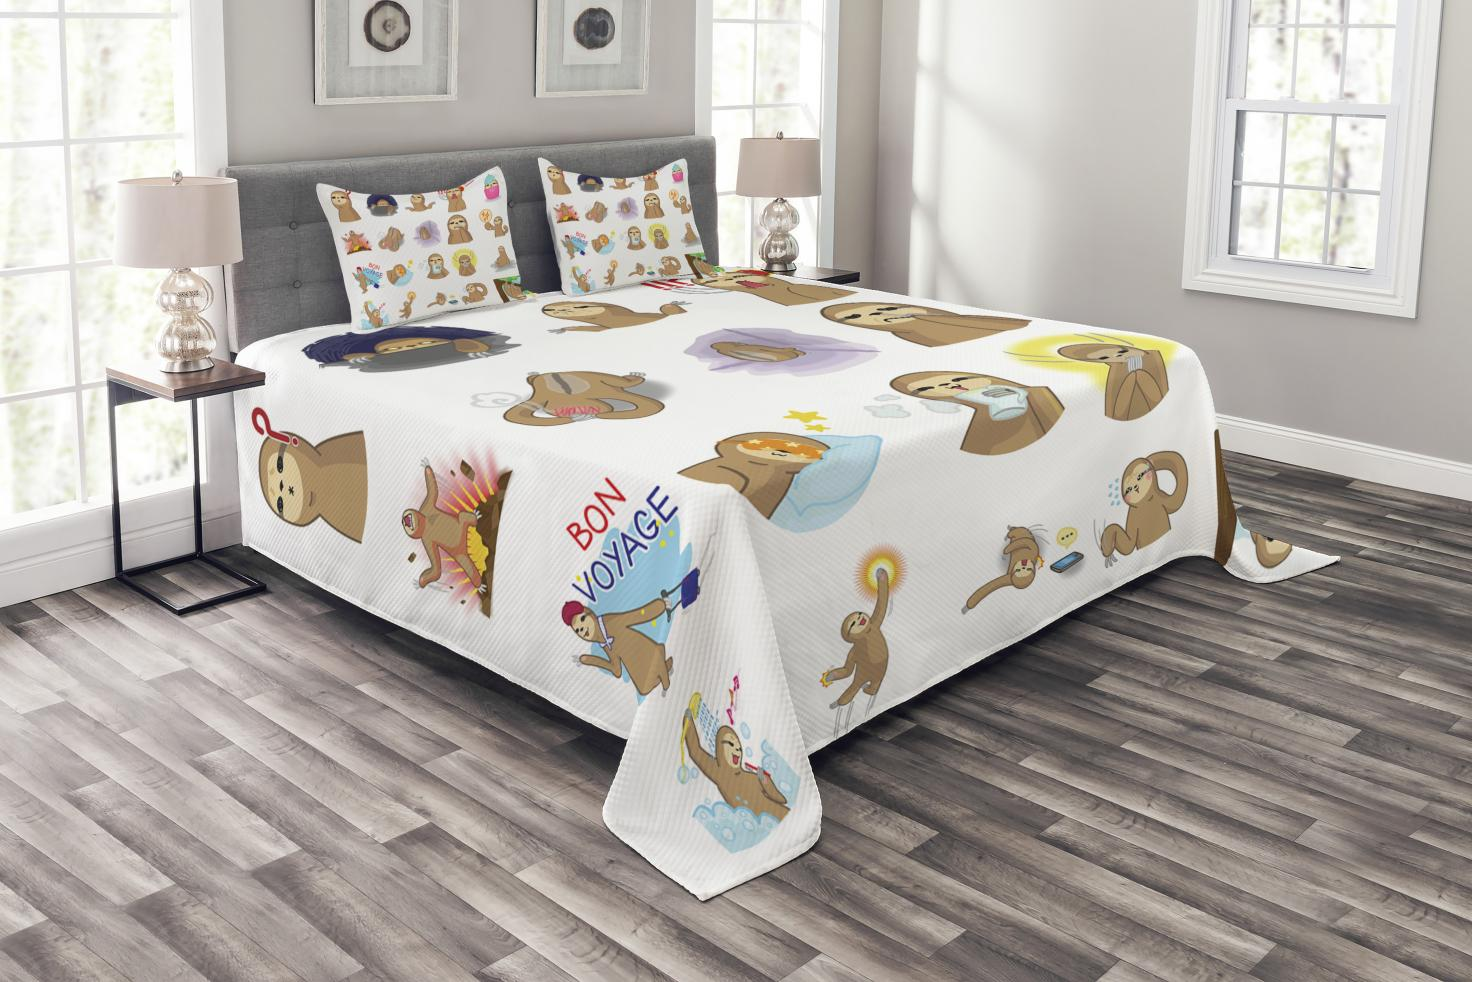 Cute Sloths on Branches Print Sloth Quilted Bedspread /& Pillow Shams Set